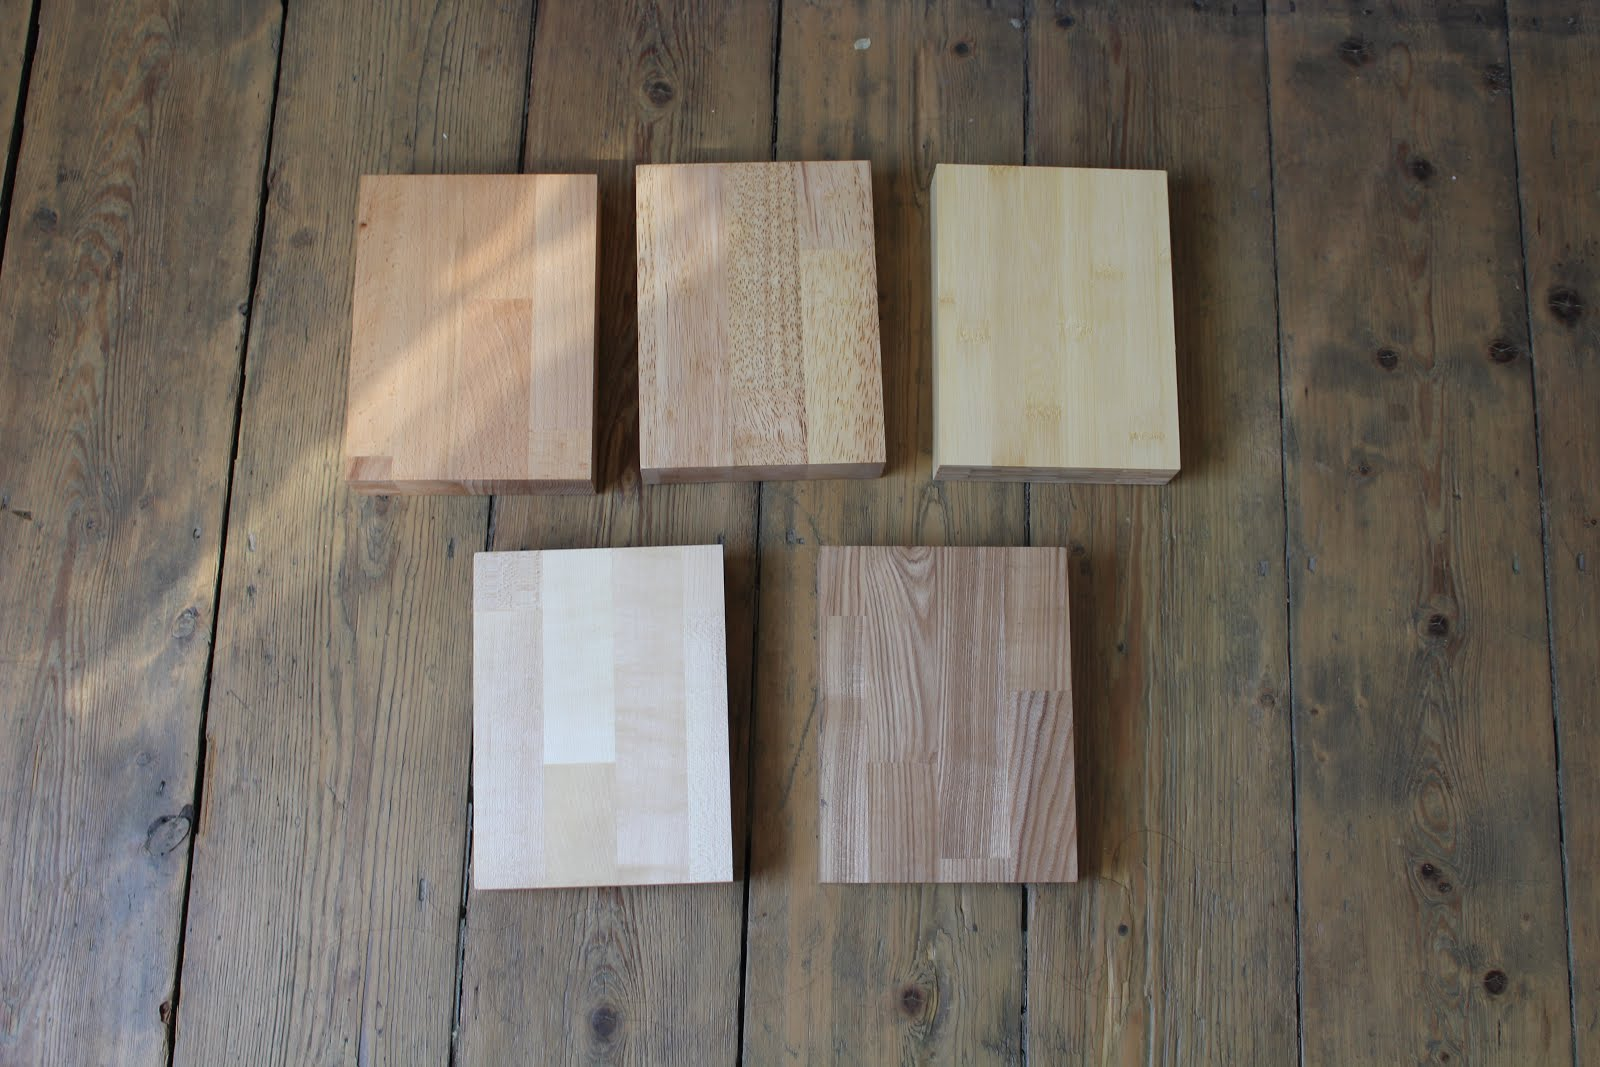 Samples from worktop-express